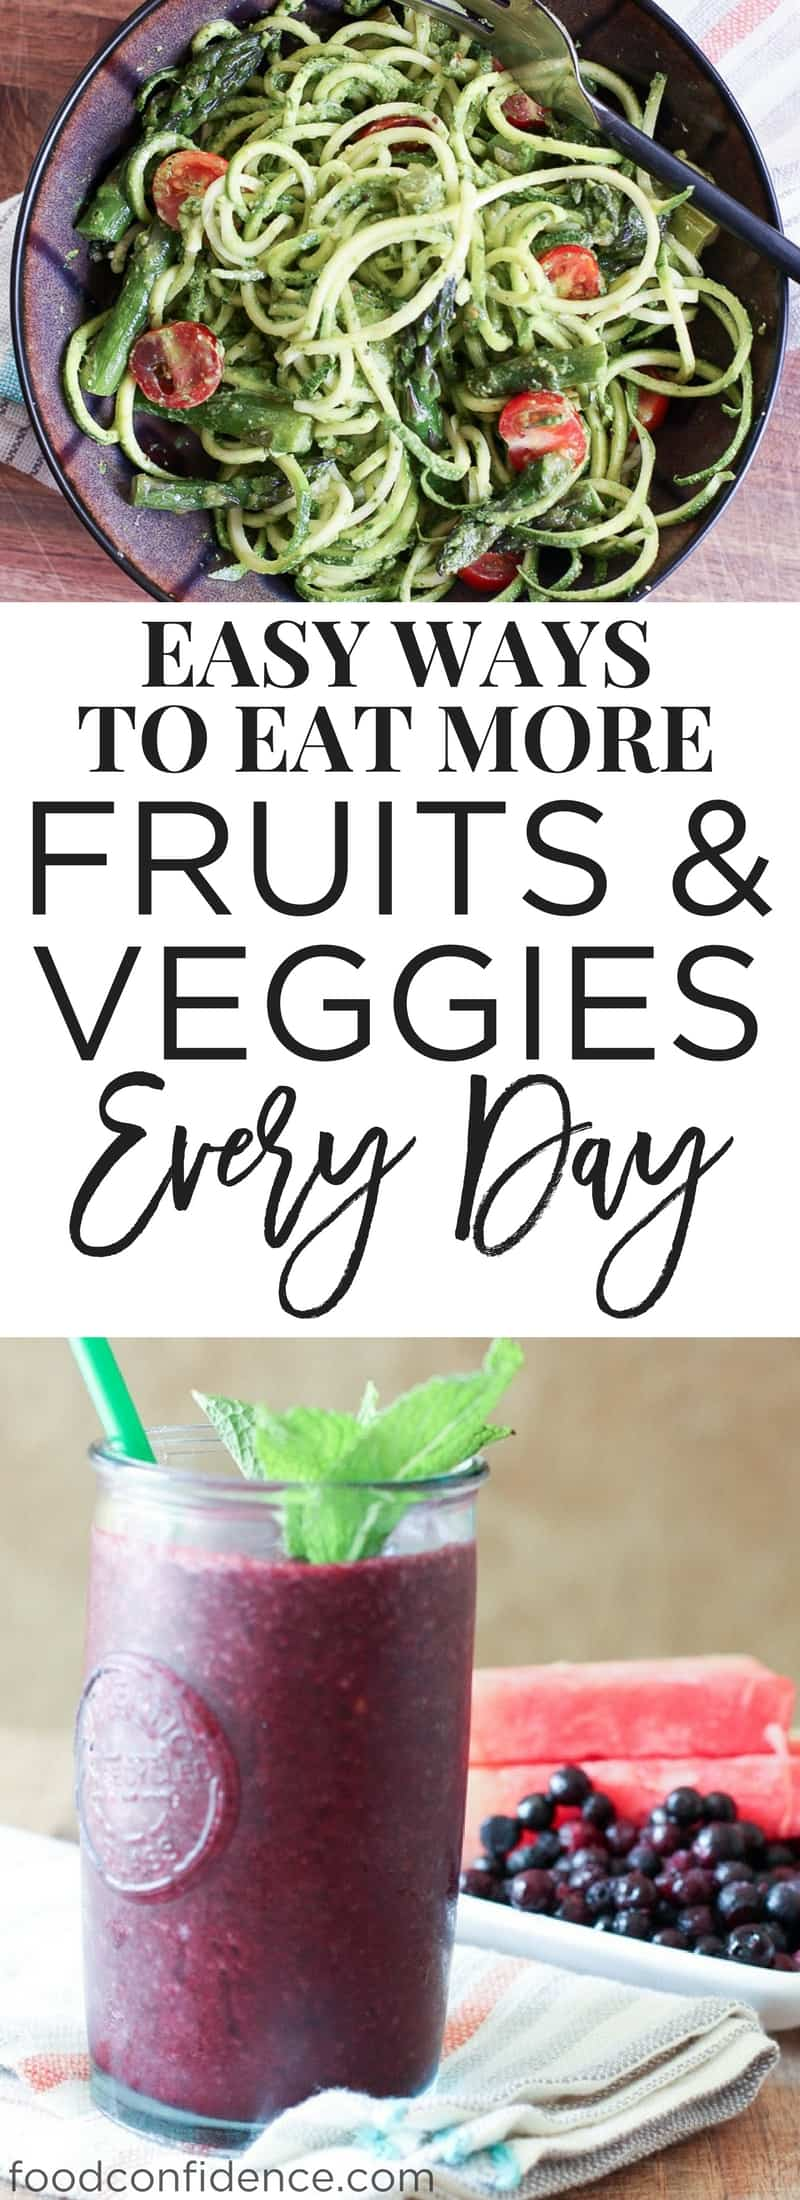 Easy Ways to Eat More Fruits and Veggies Every Day